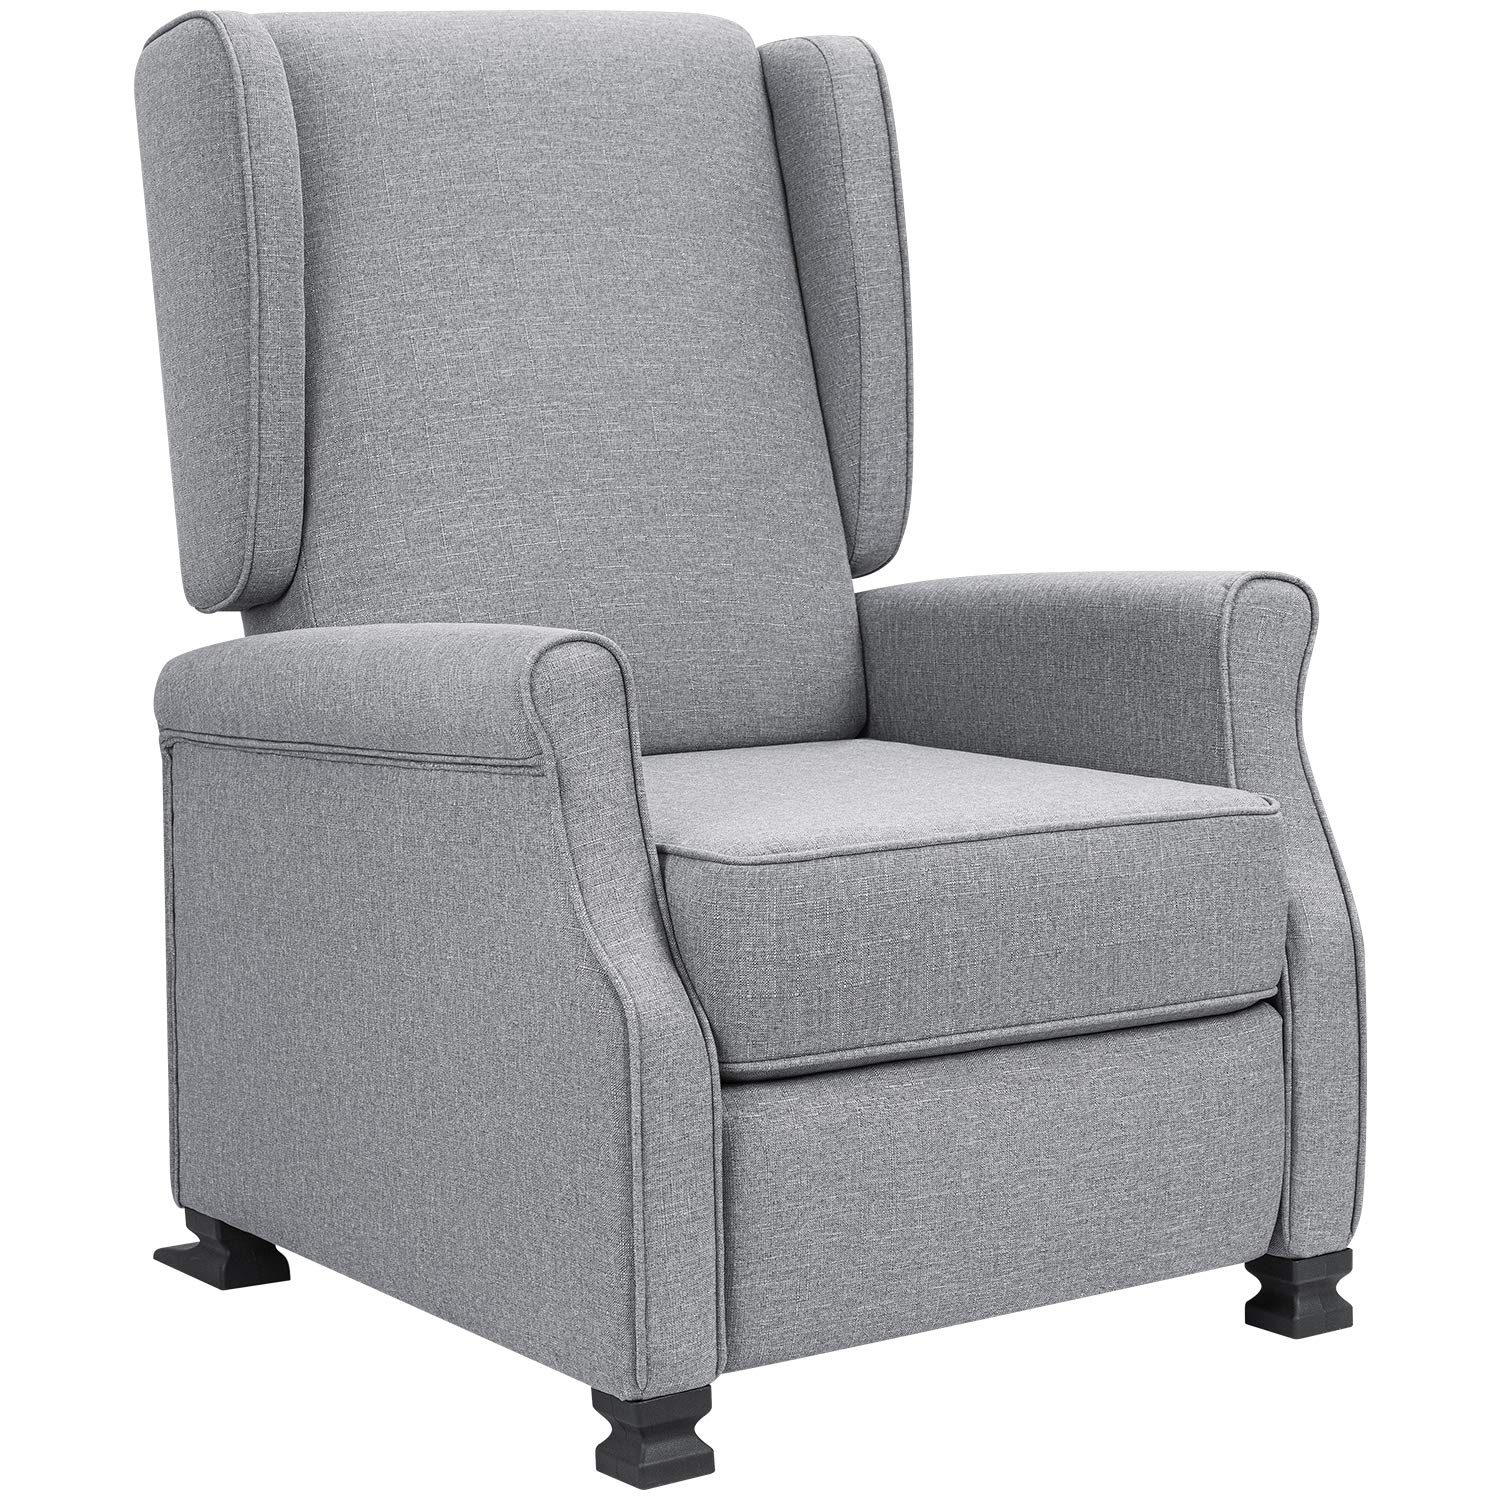 JUMMICO Recliner Chair Wingback Fabric Adjustable Modern Living Room Arm Chair Push Back Single Recliner Sofa Home Theater Chair (Grey)